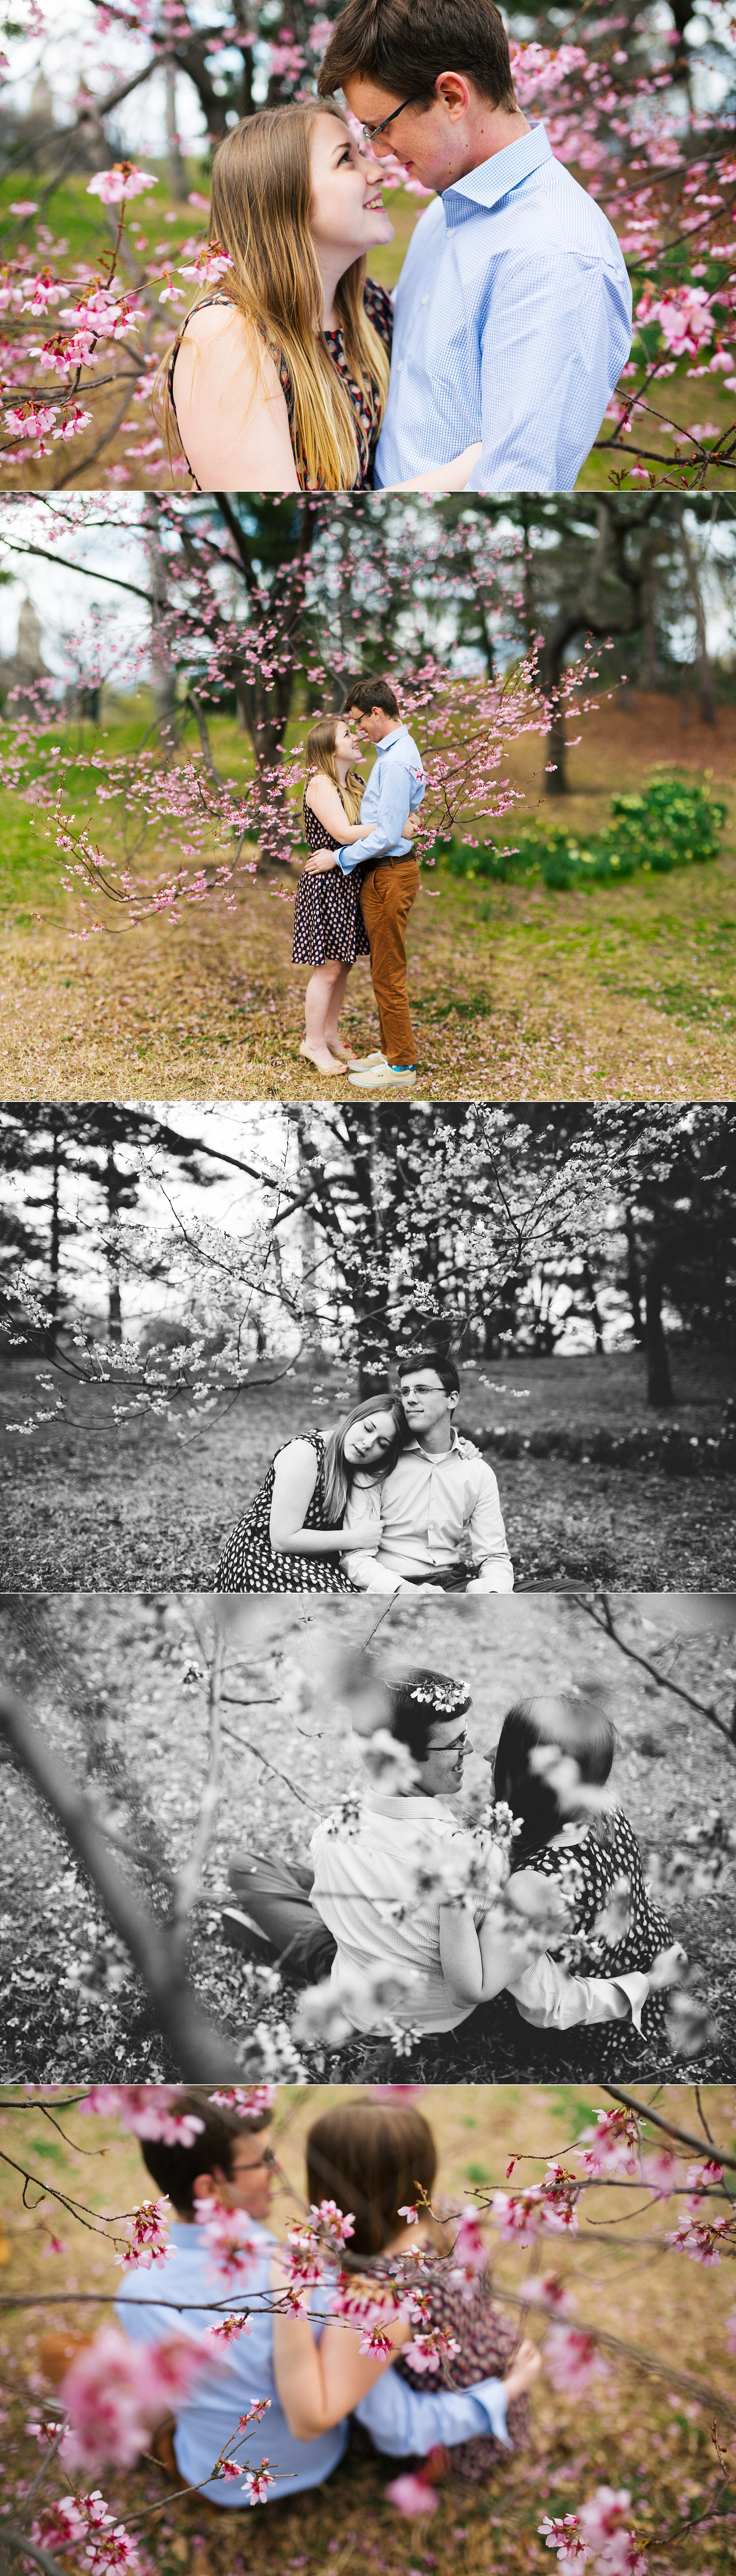 nyc central park engagement photos spencer helena-8